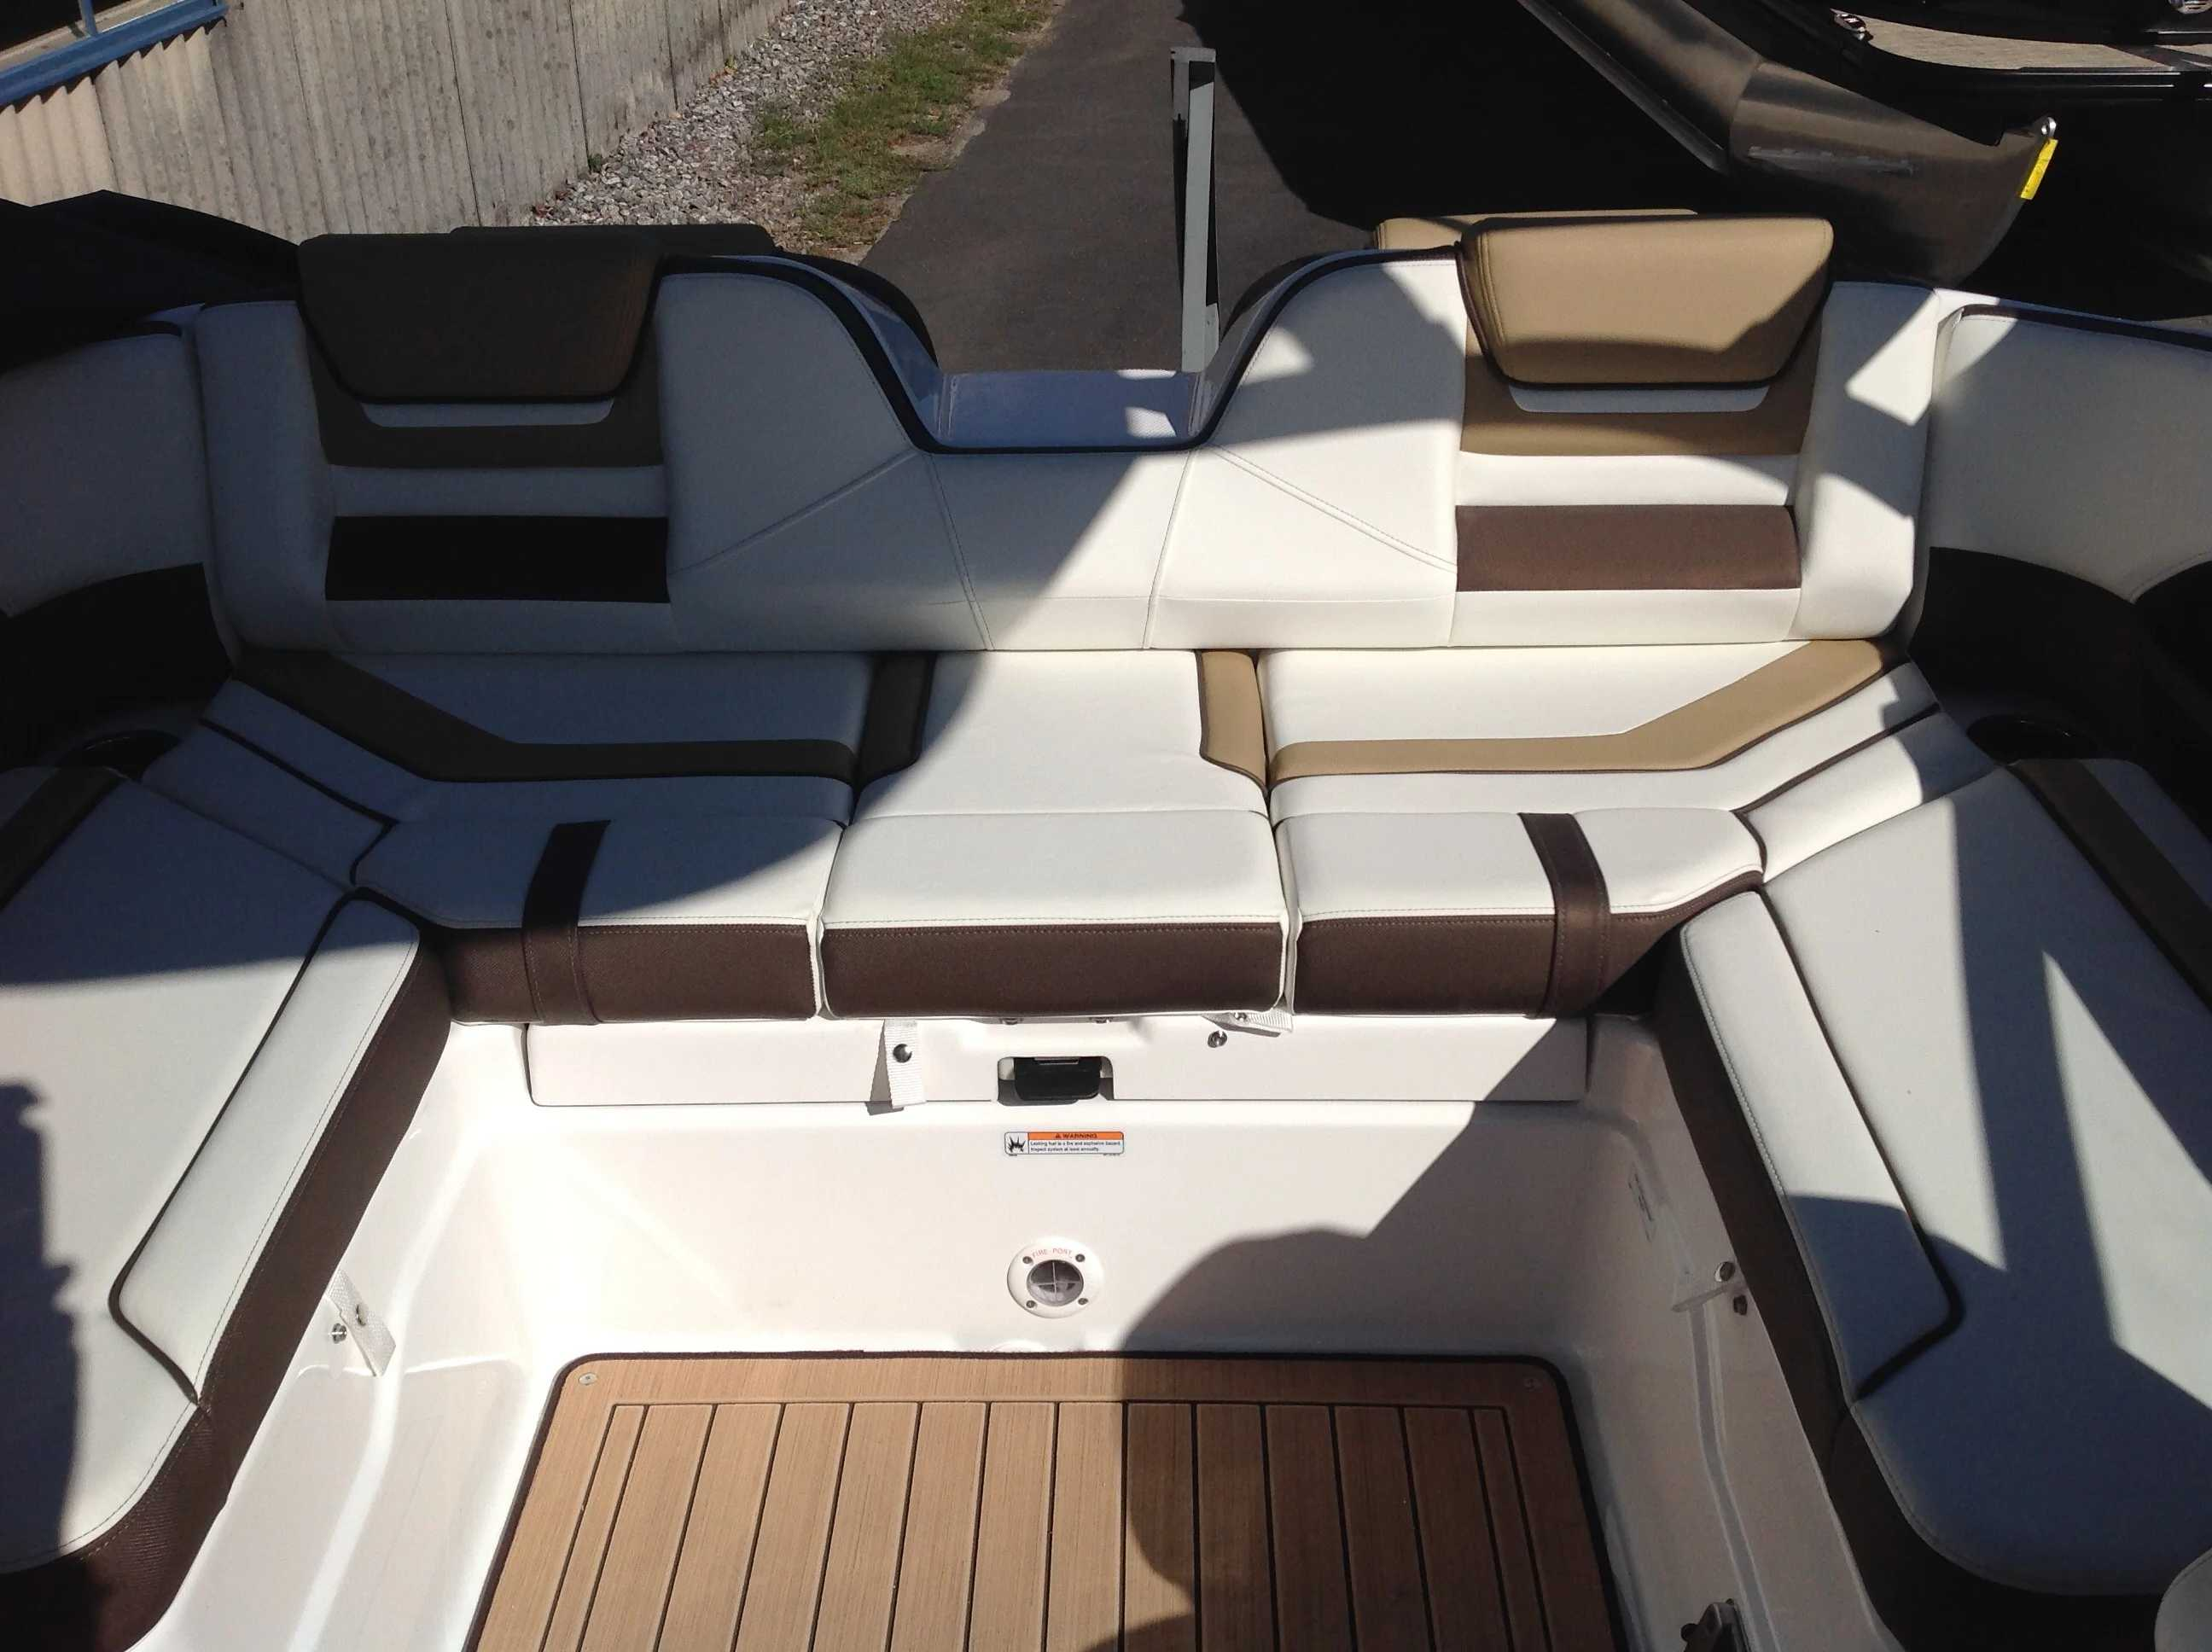 2021 Yamaha boat for sale, model of the boat is 212se & Image # 11 of 14